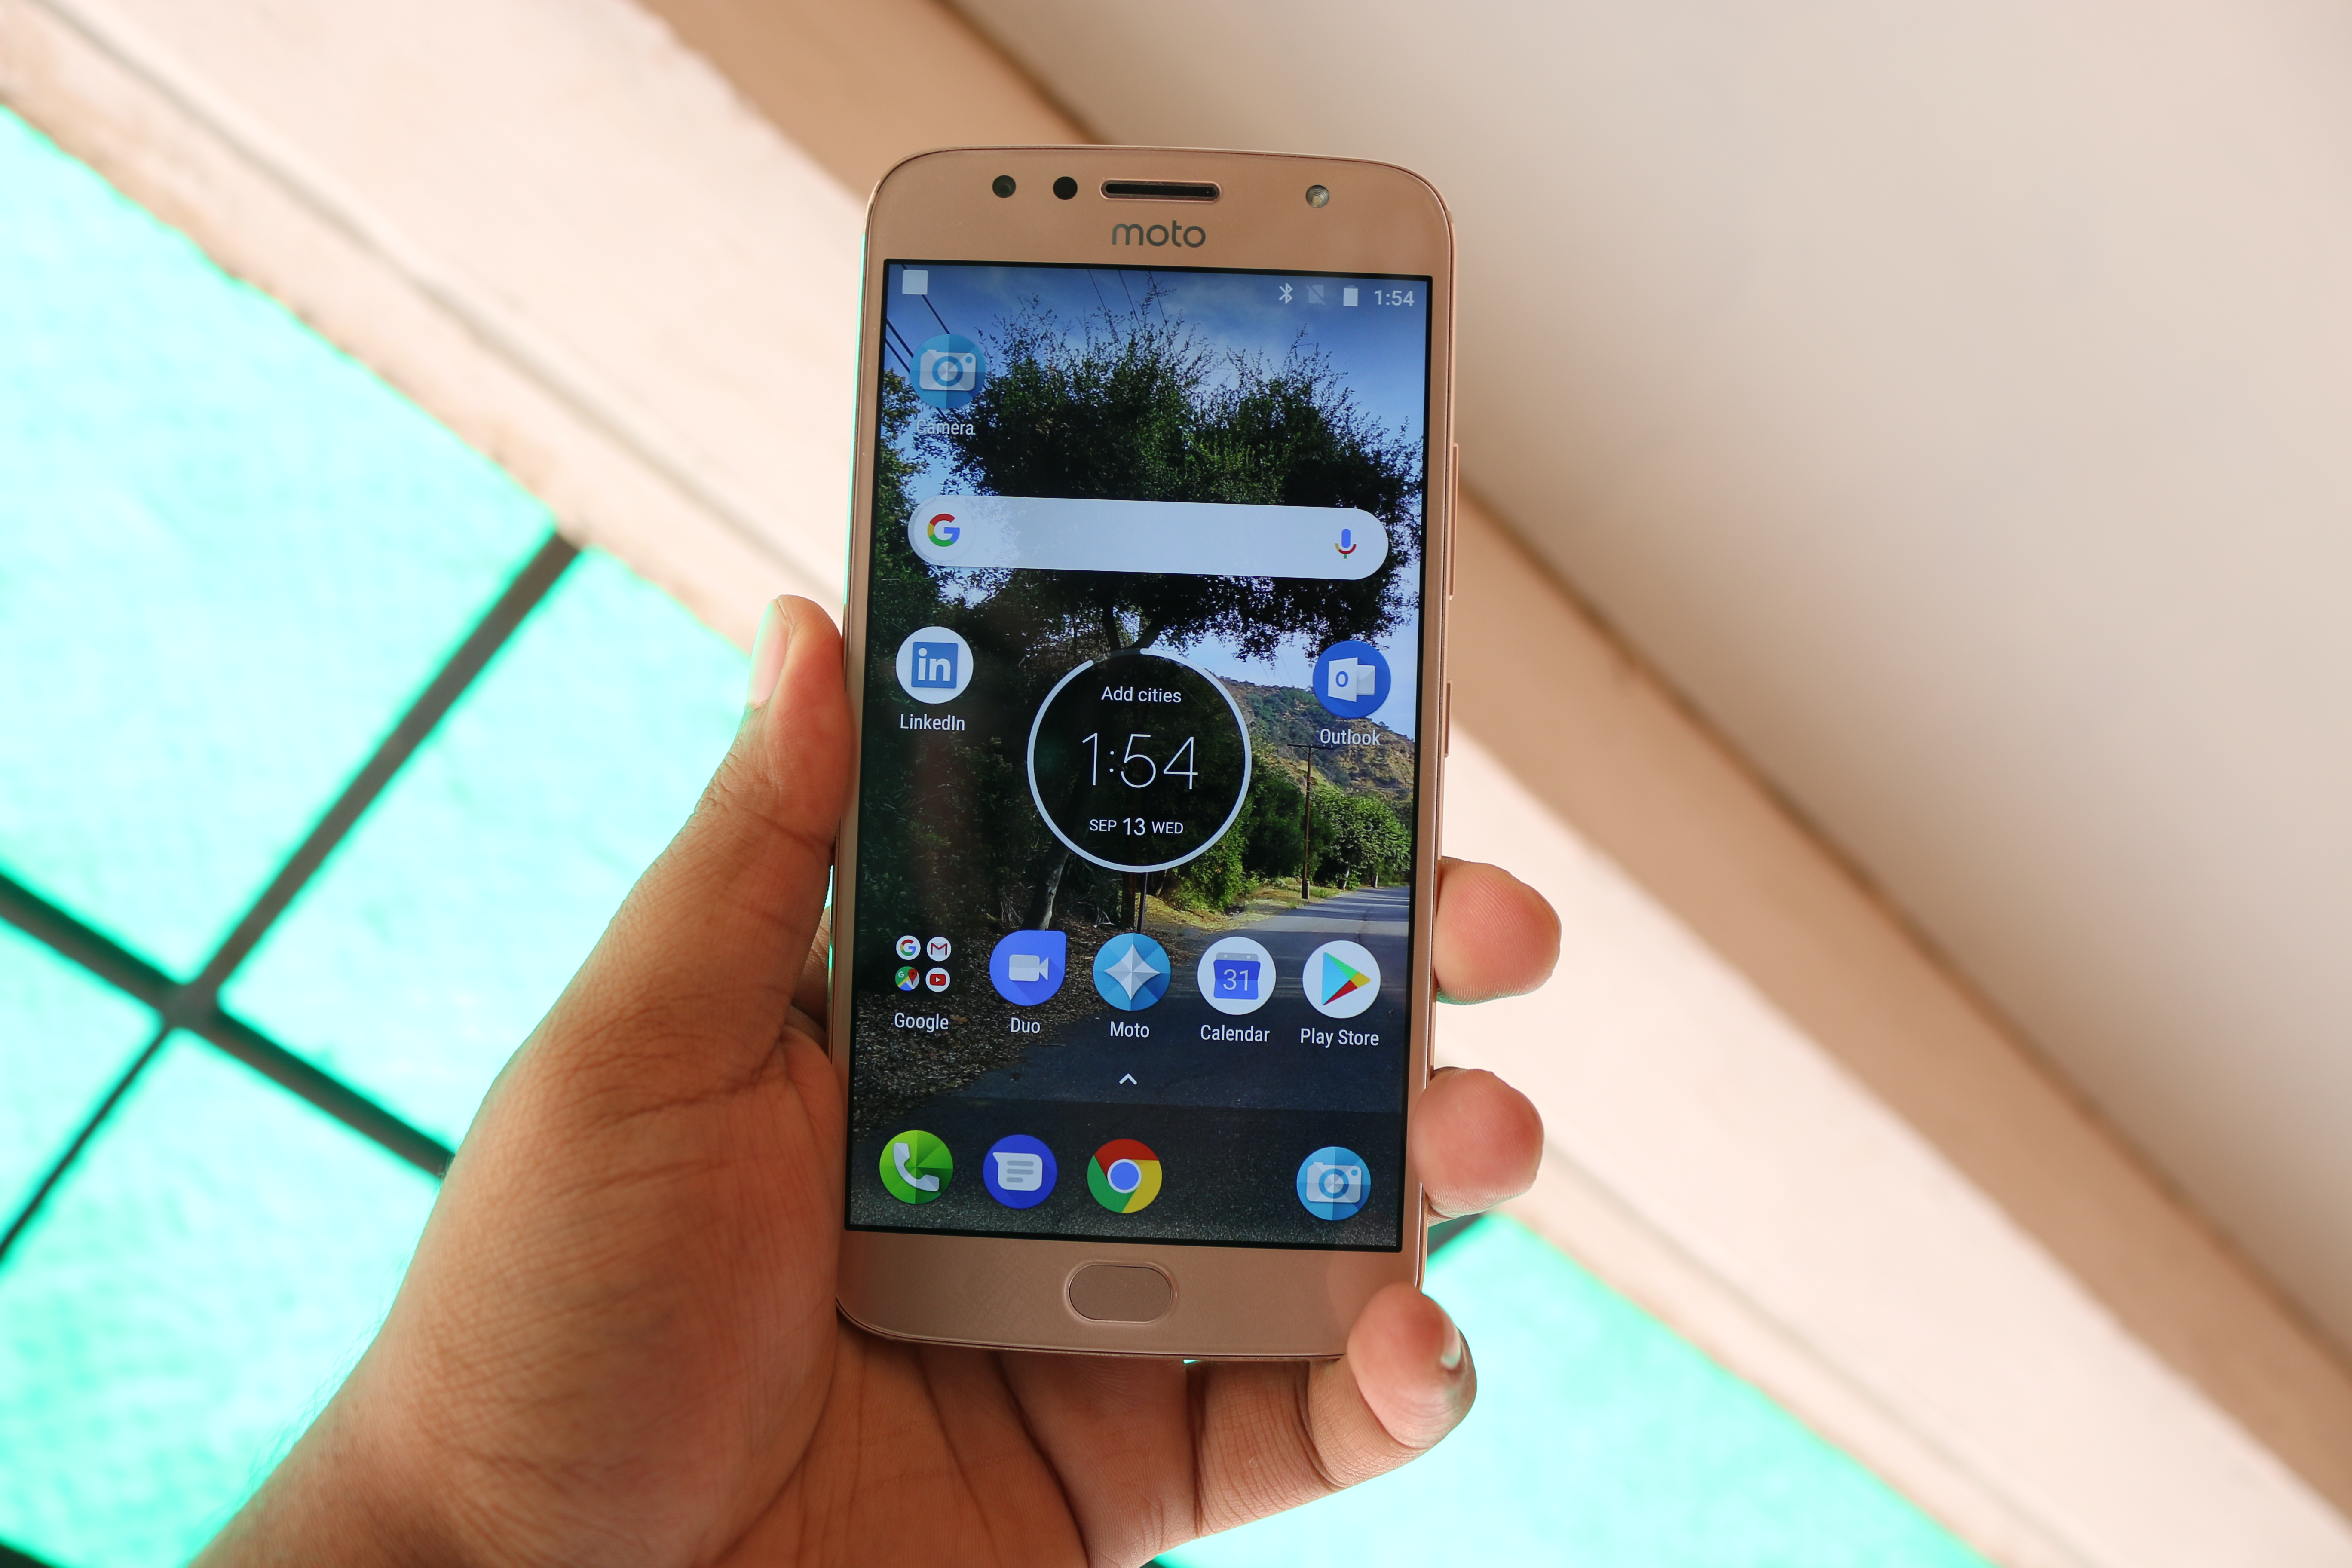 Moto G5S Plus review: Worthy G5 plus upgrade? |